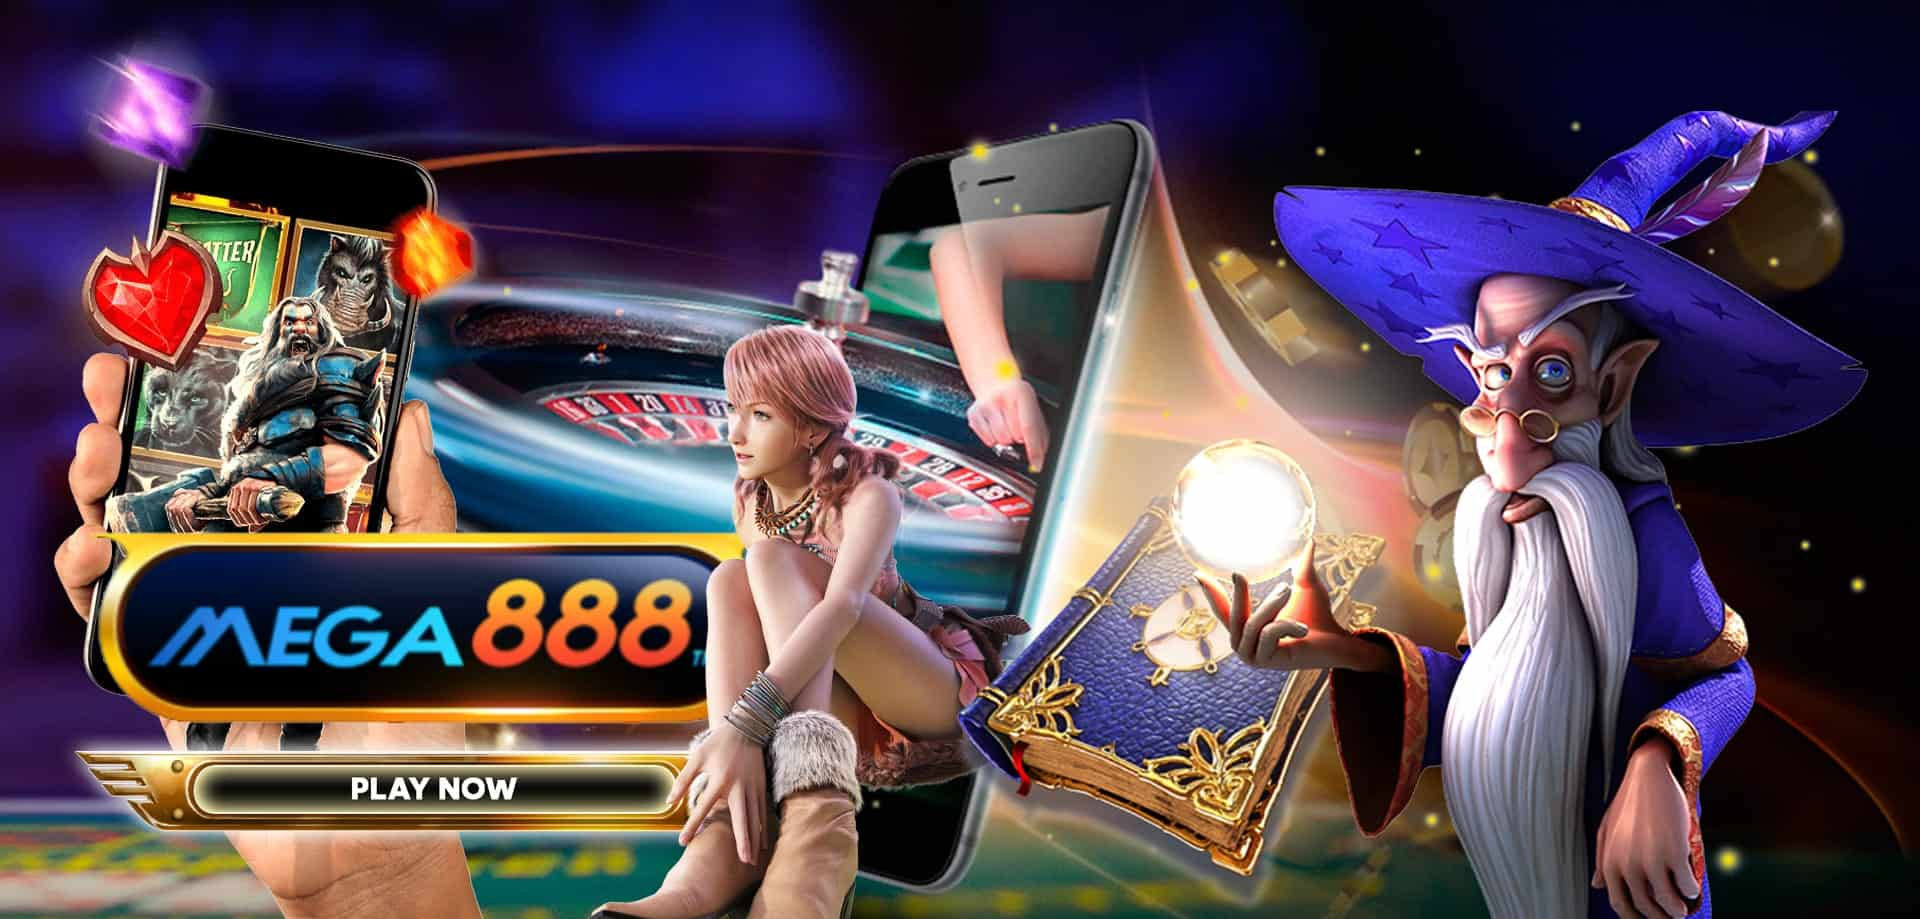 You will be able to see an extensive list of mega888 games available at this time